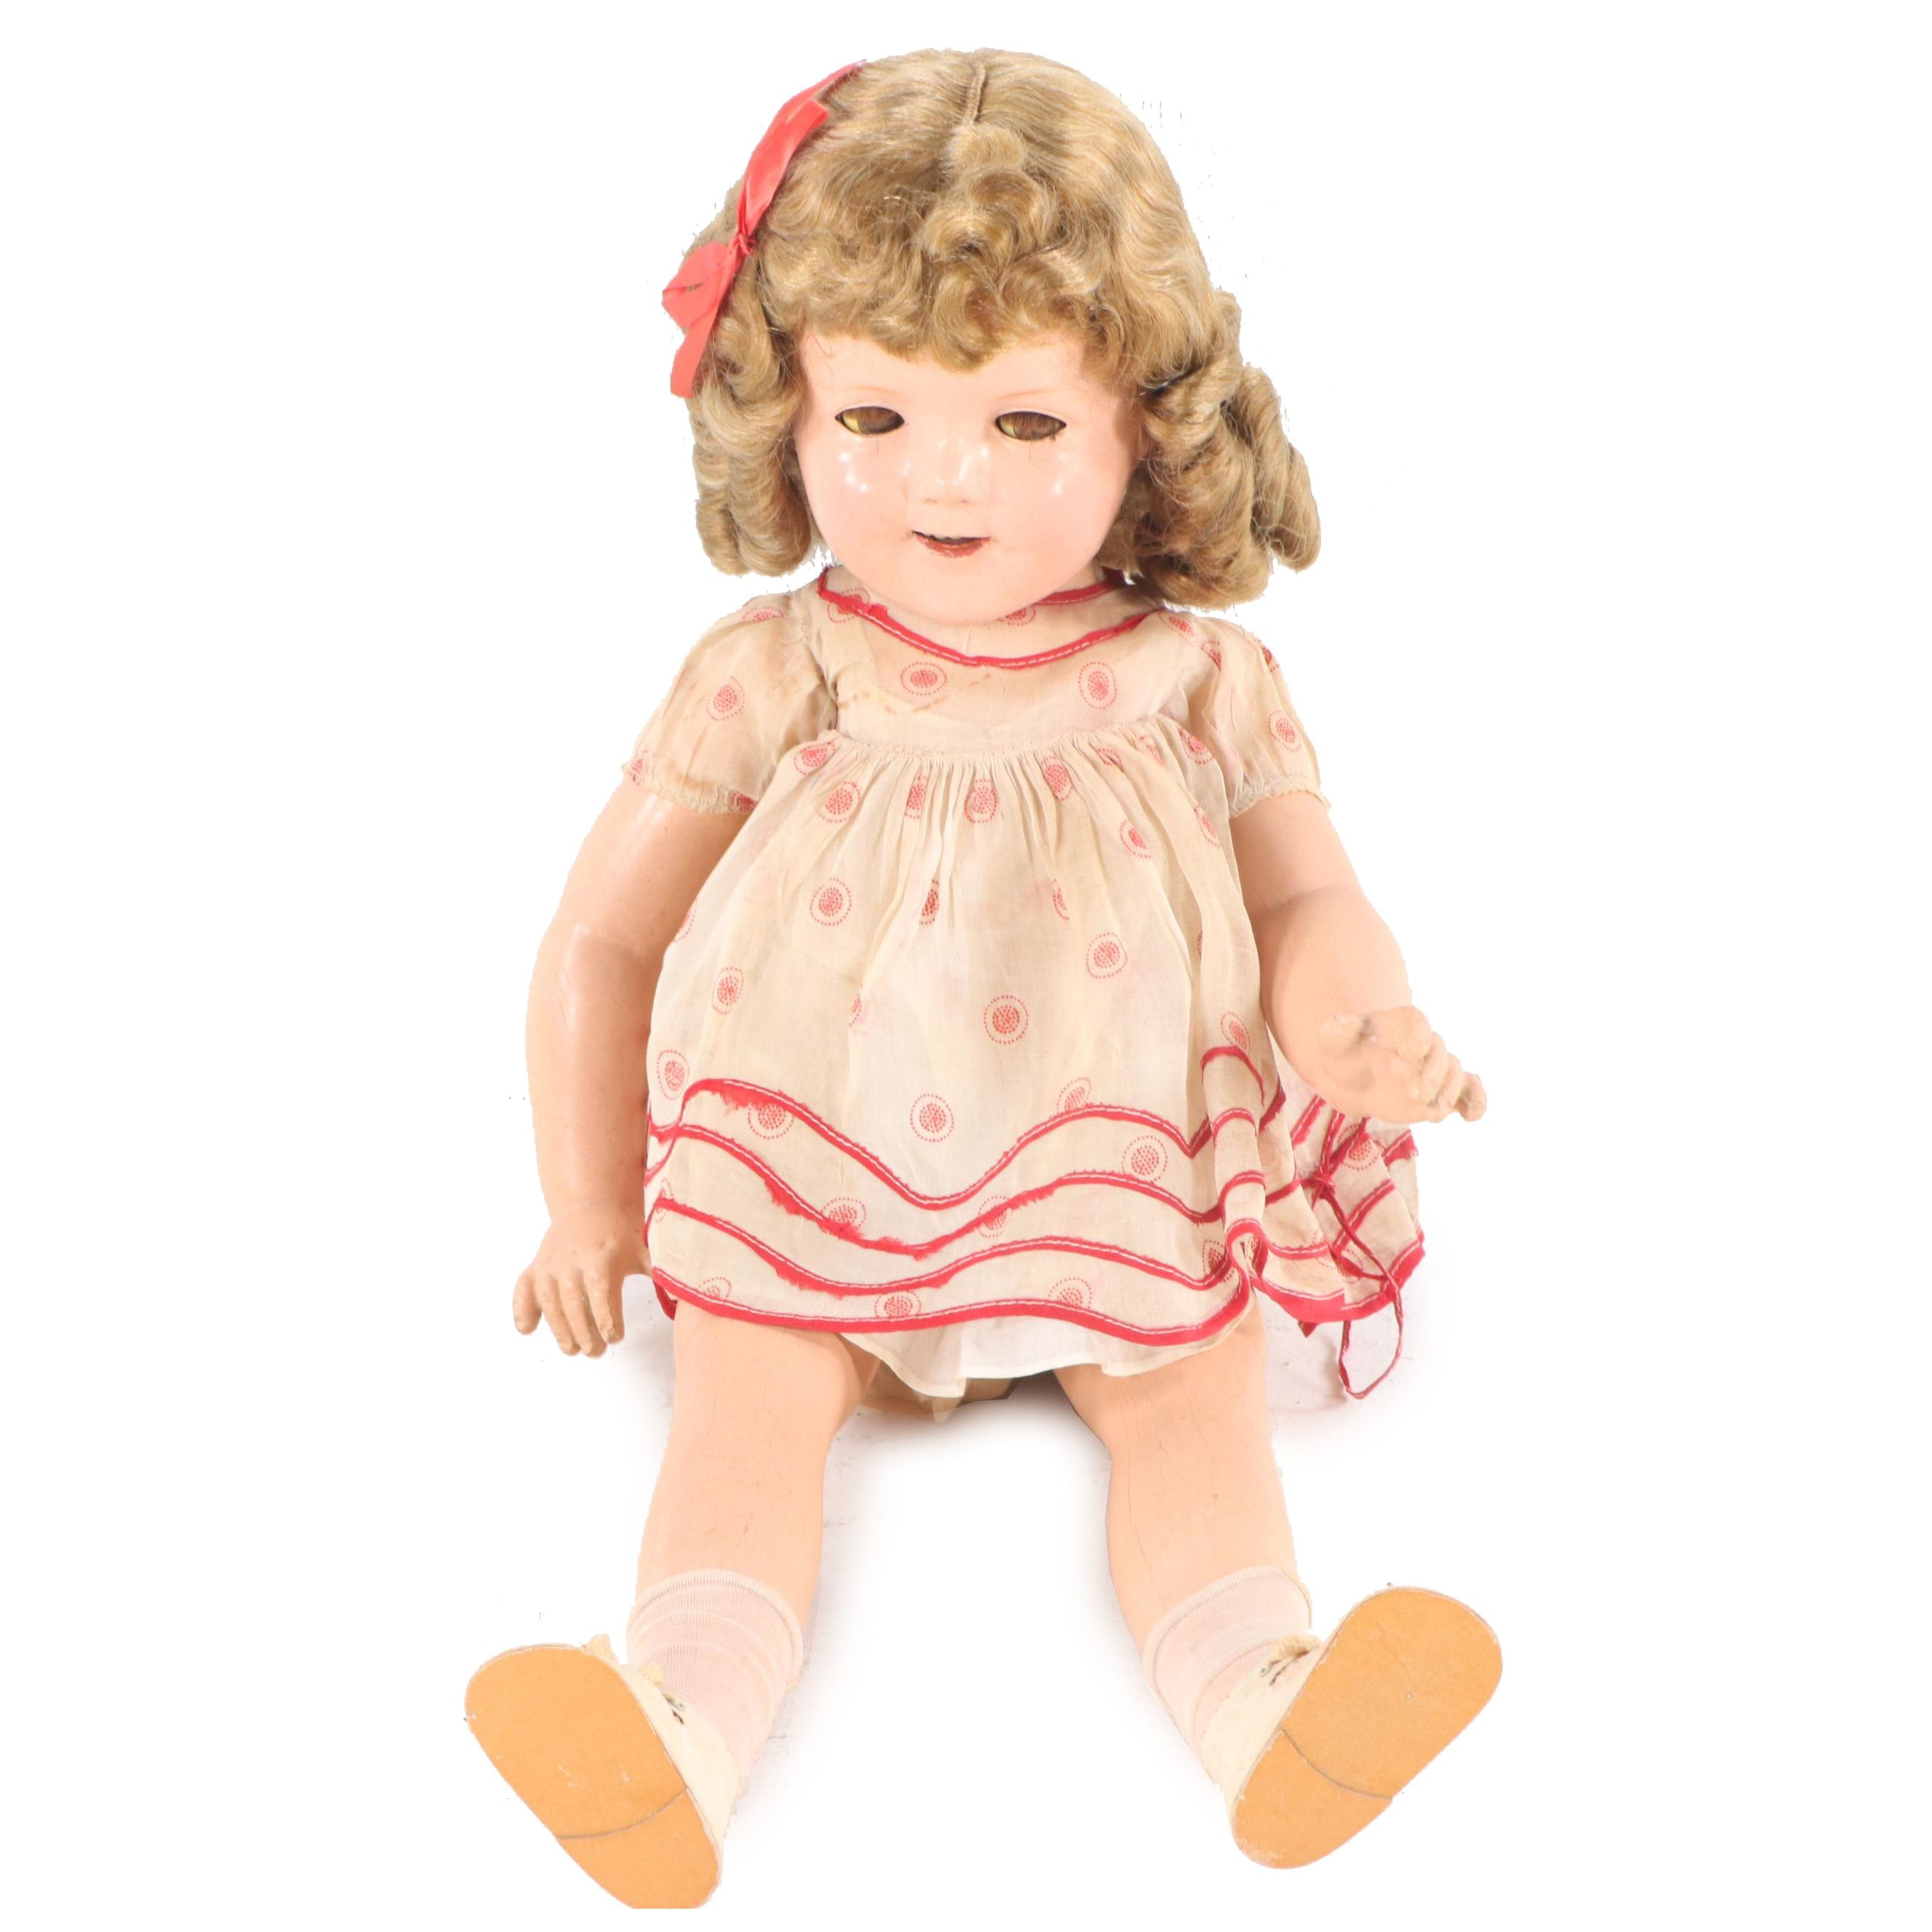 Shirley Temple Doll, circa 1930s